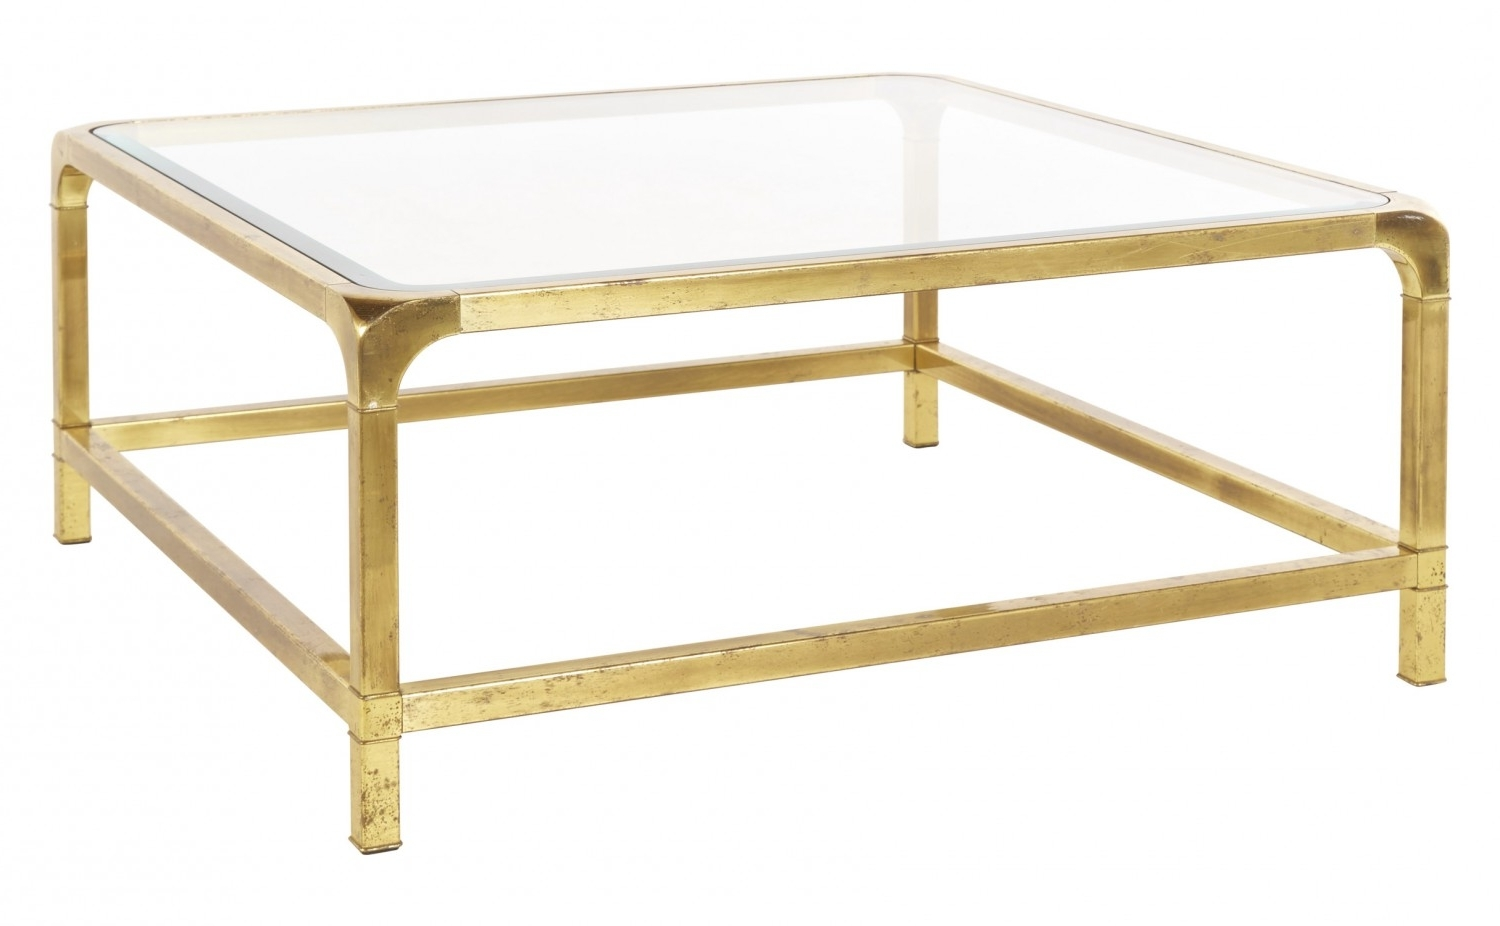 Jayson Home Intended For Most Recently Released Antique Brass Coffee Tables (View 15 of 20)